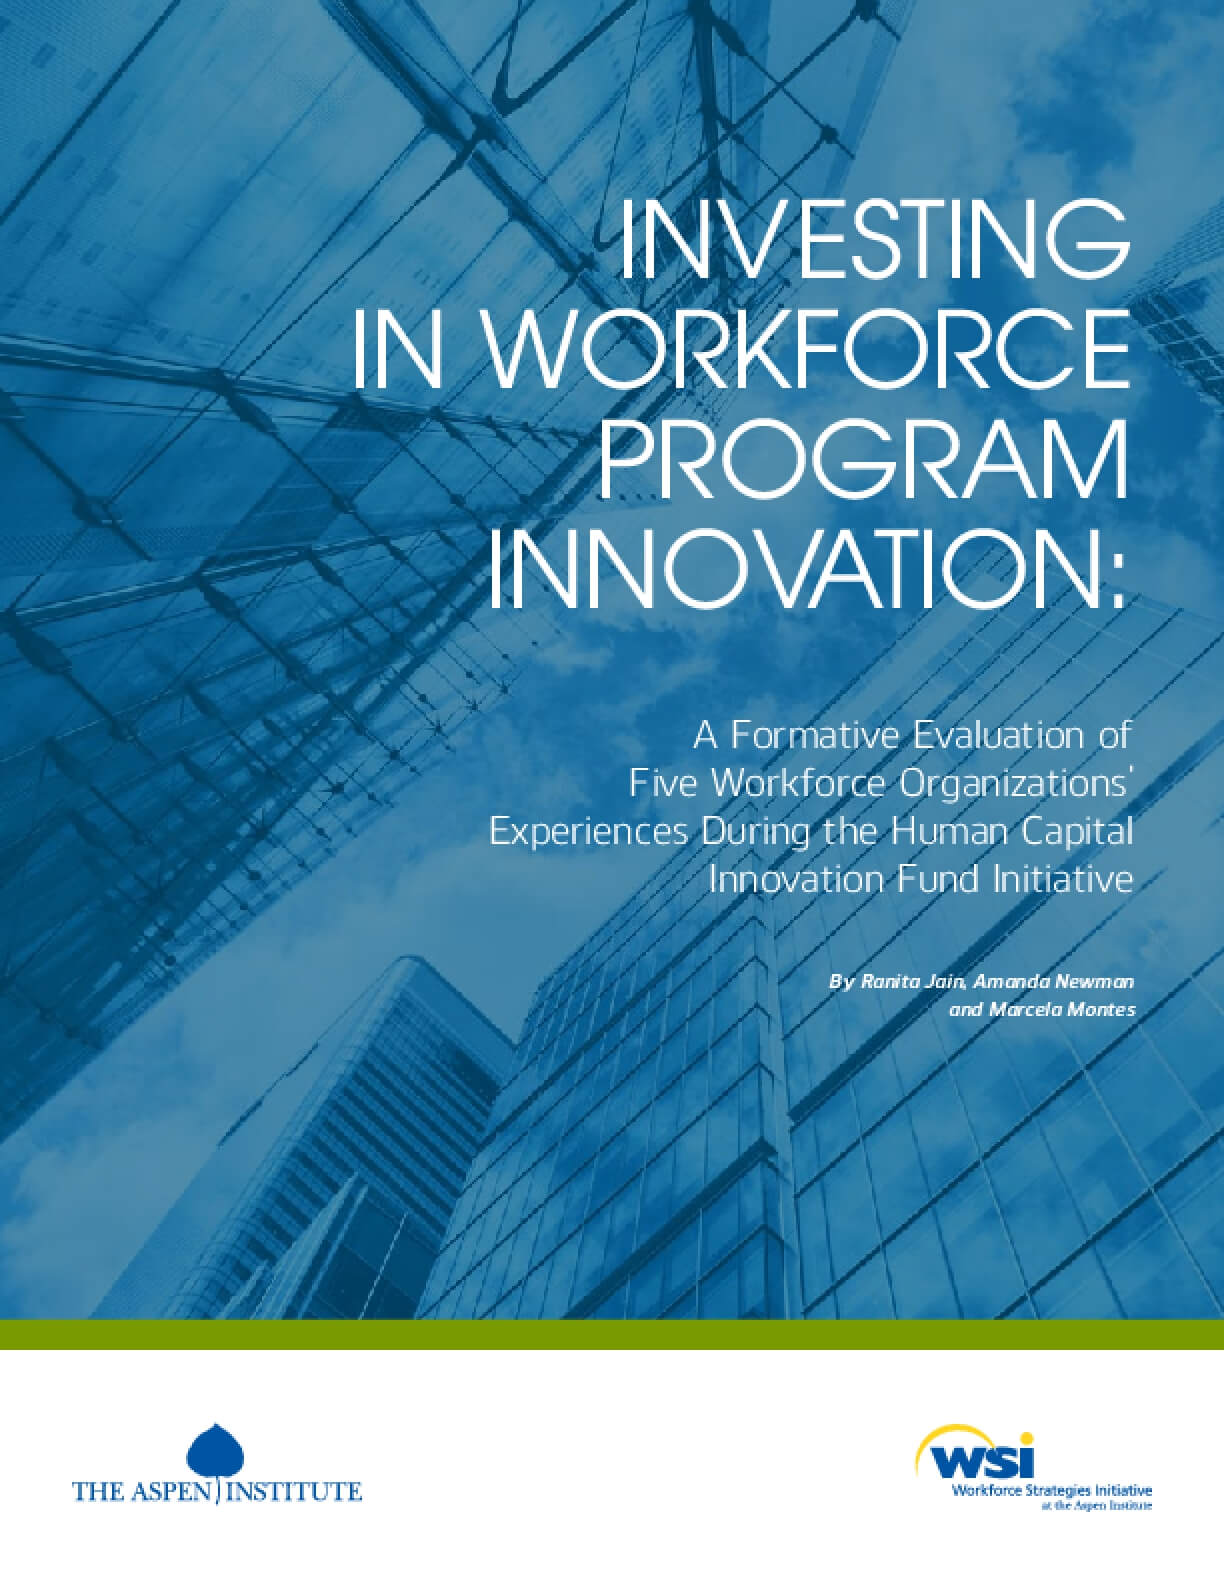 Investing in Workforce Program Innovation: A Formative Evaluation of Five Workforce Organizations' Experiences During the Human Capital Innovation Fund Initiative